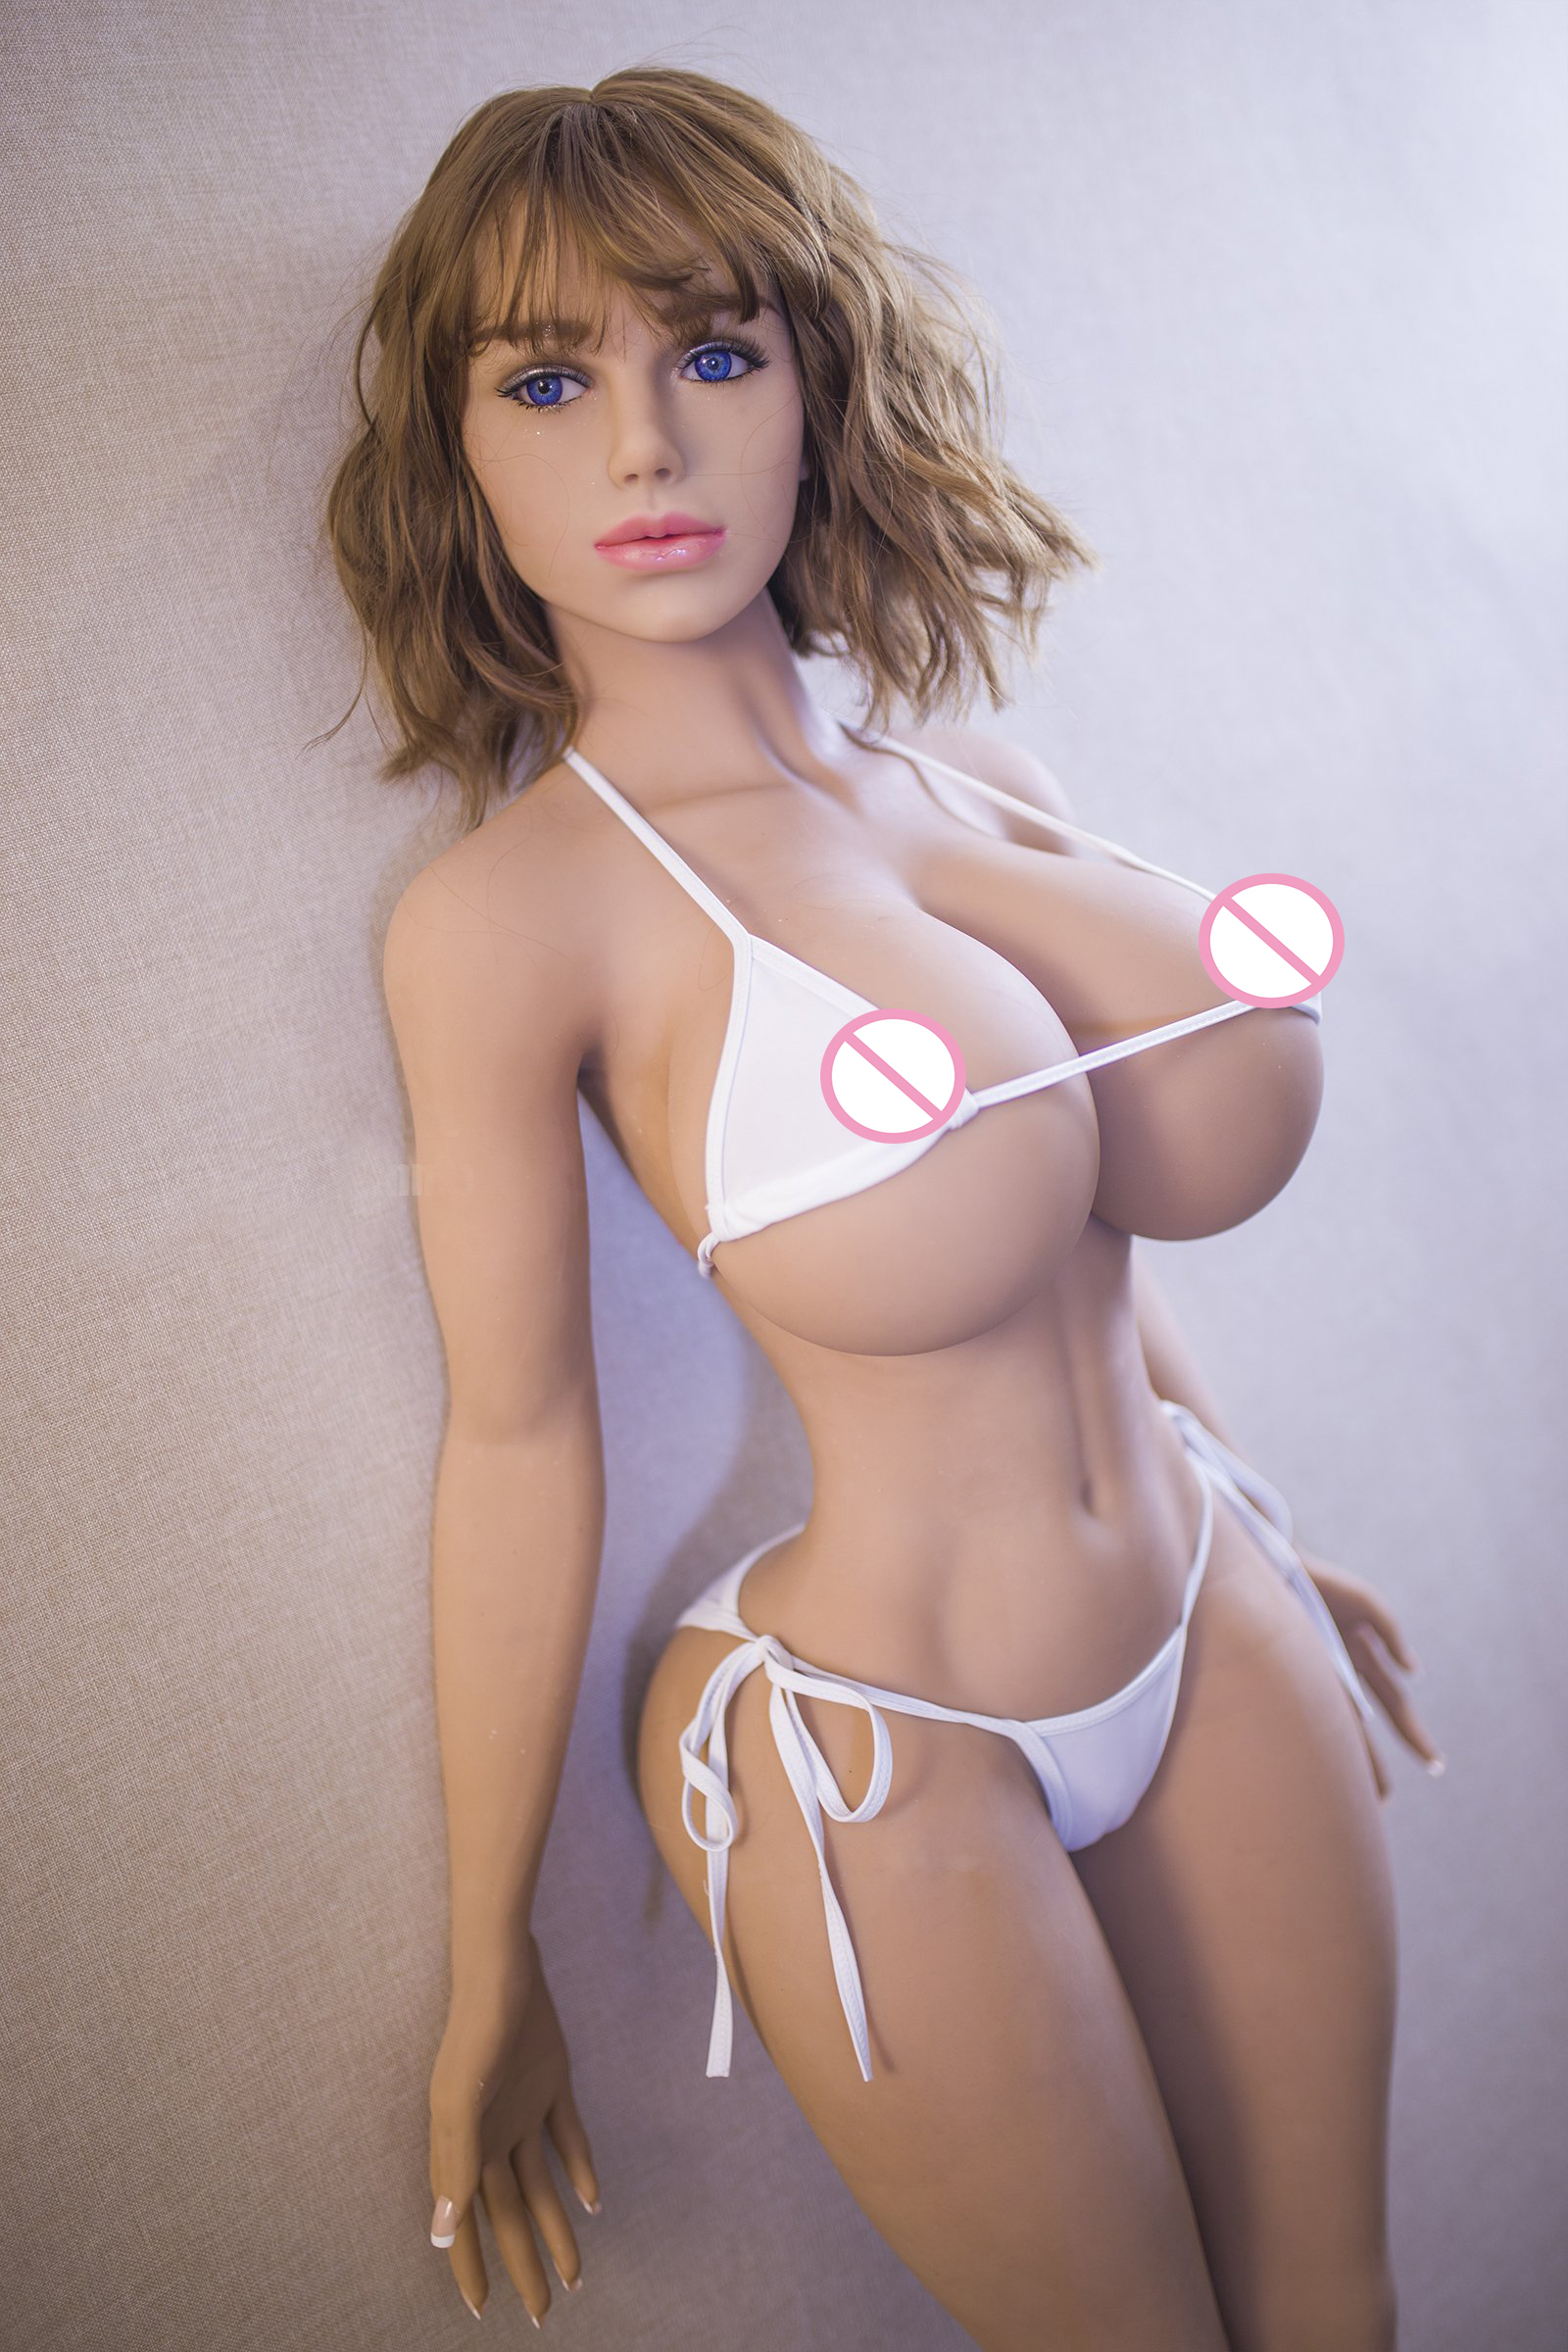 Hcdee592a3f4c4b6dae85750f931ec3c8s EXDOLL Sex Dolls 158cm Silicone Muscle Women Big Breasts European Beauty Sexy Thick Lip Ass Oral Anus Adult Toys for Men